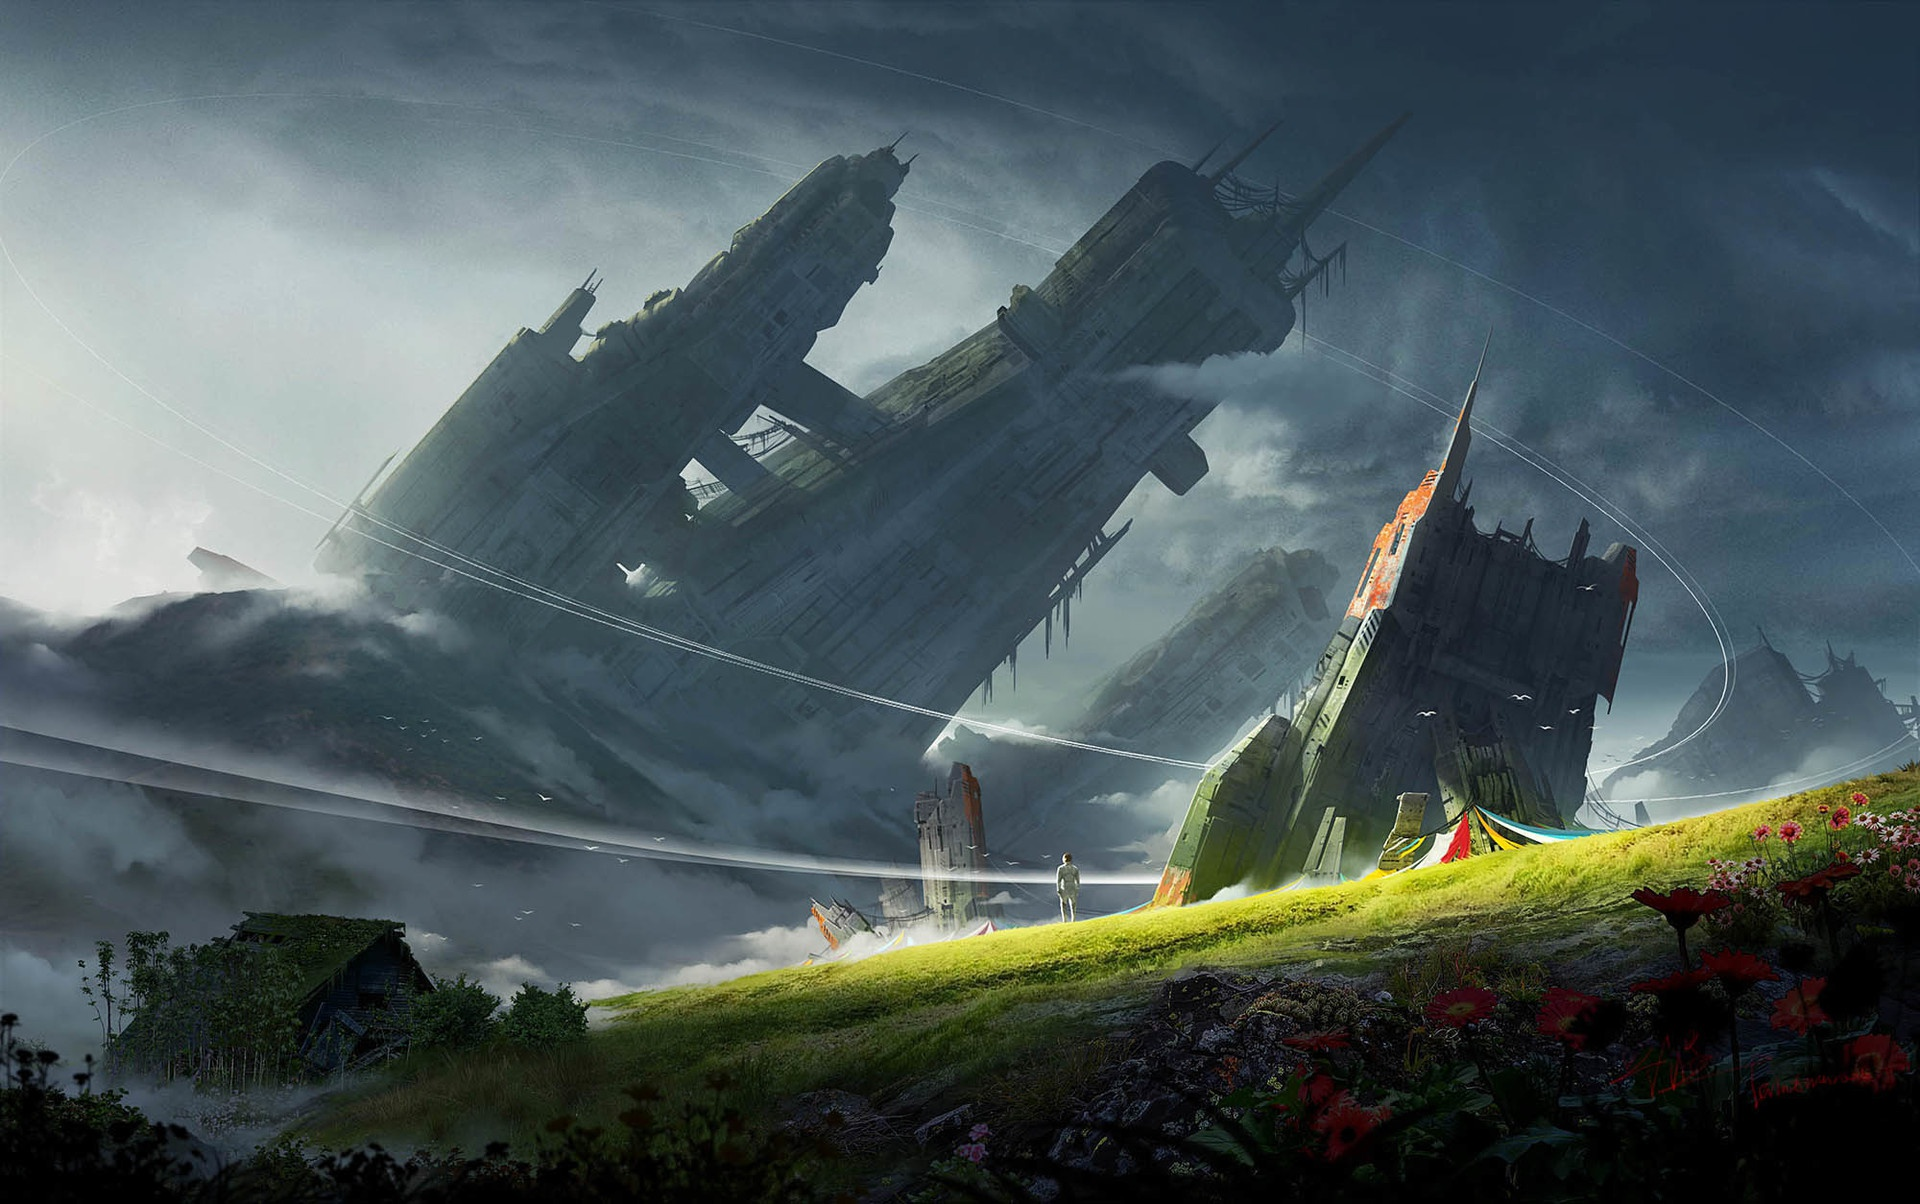 General 1920x1204 science fiction artwork landscape sky building